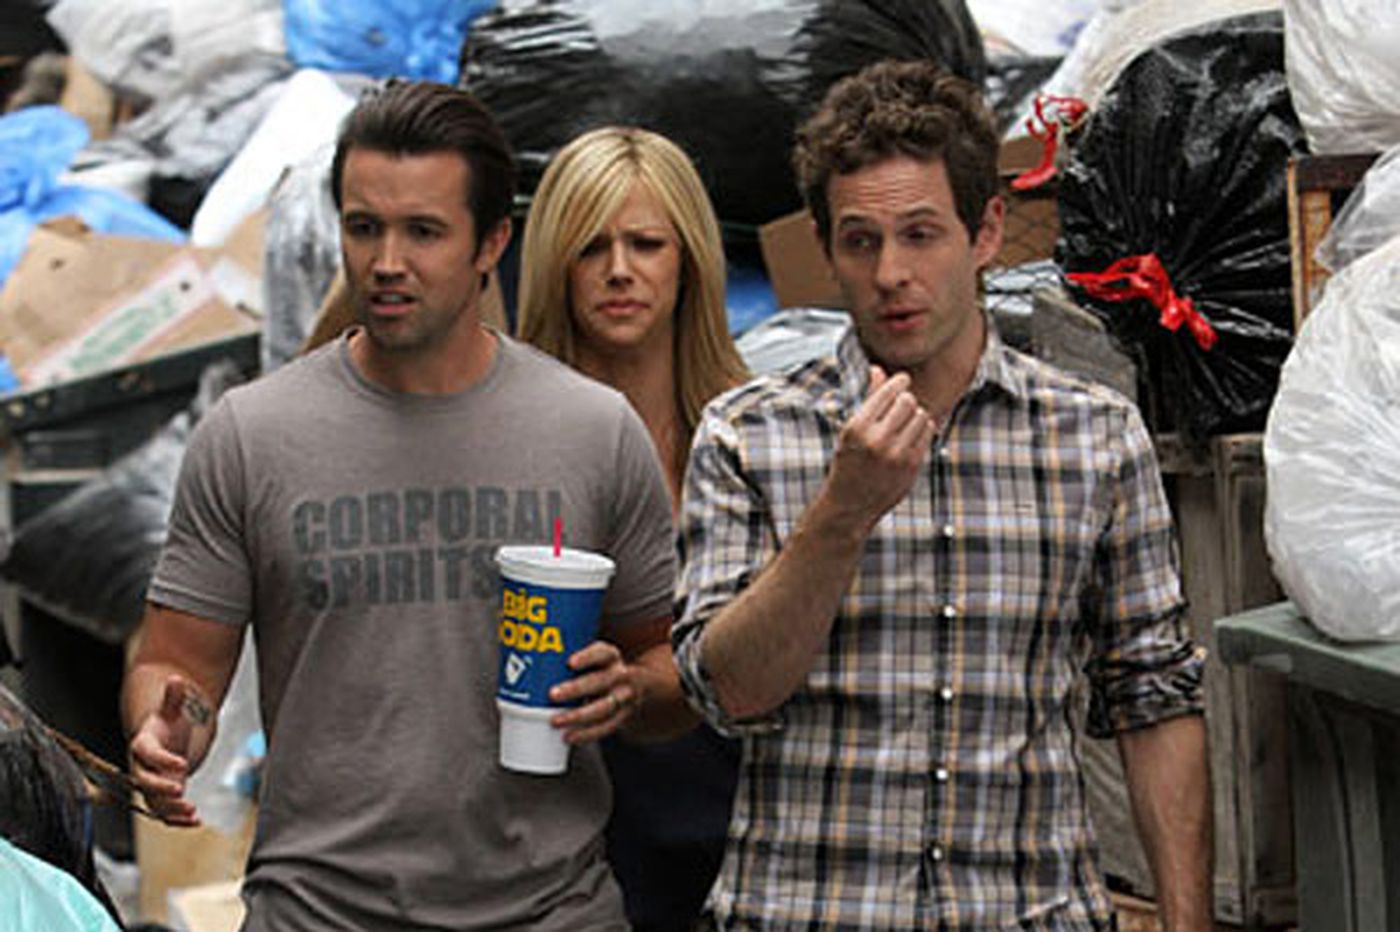 'It's Always Sunny in Philadelphia': 'Good chance' it could continue past next season, says FX chief